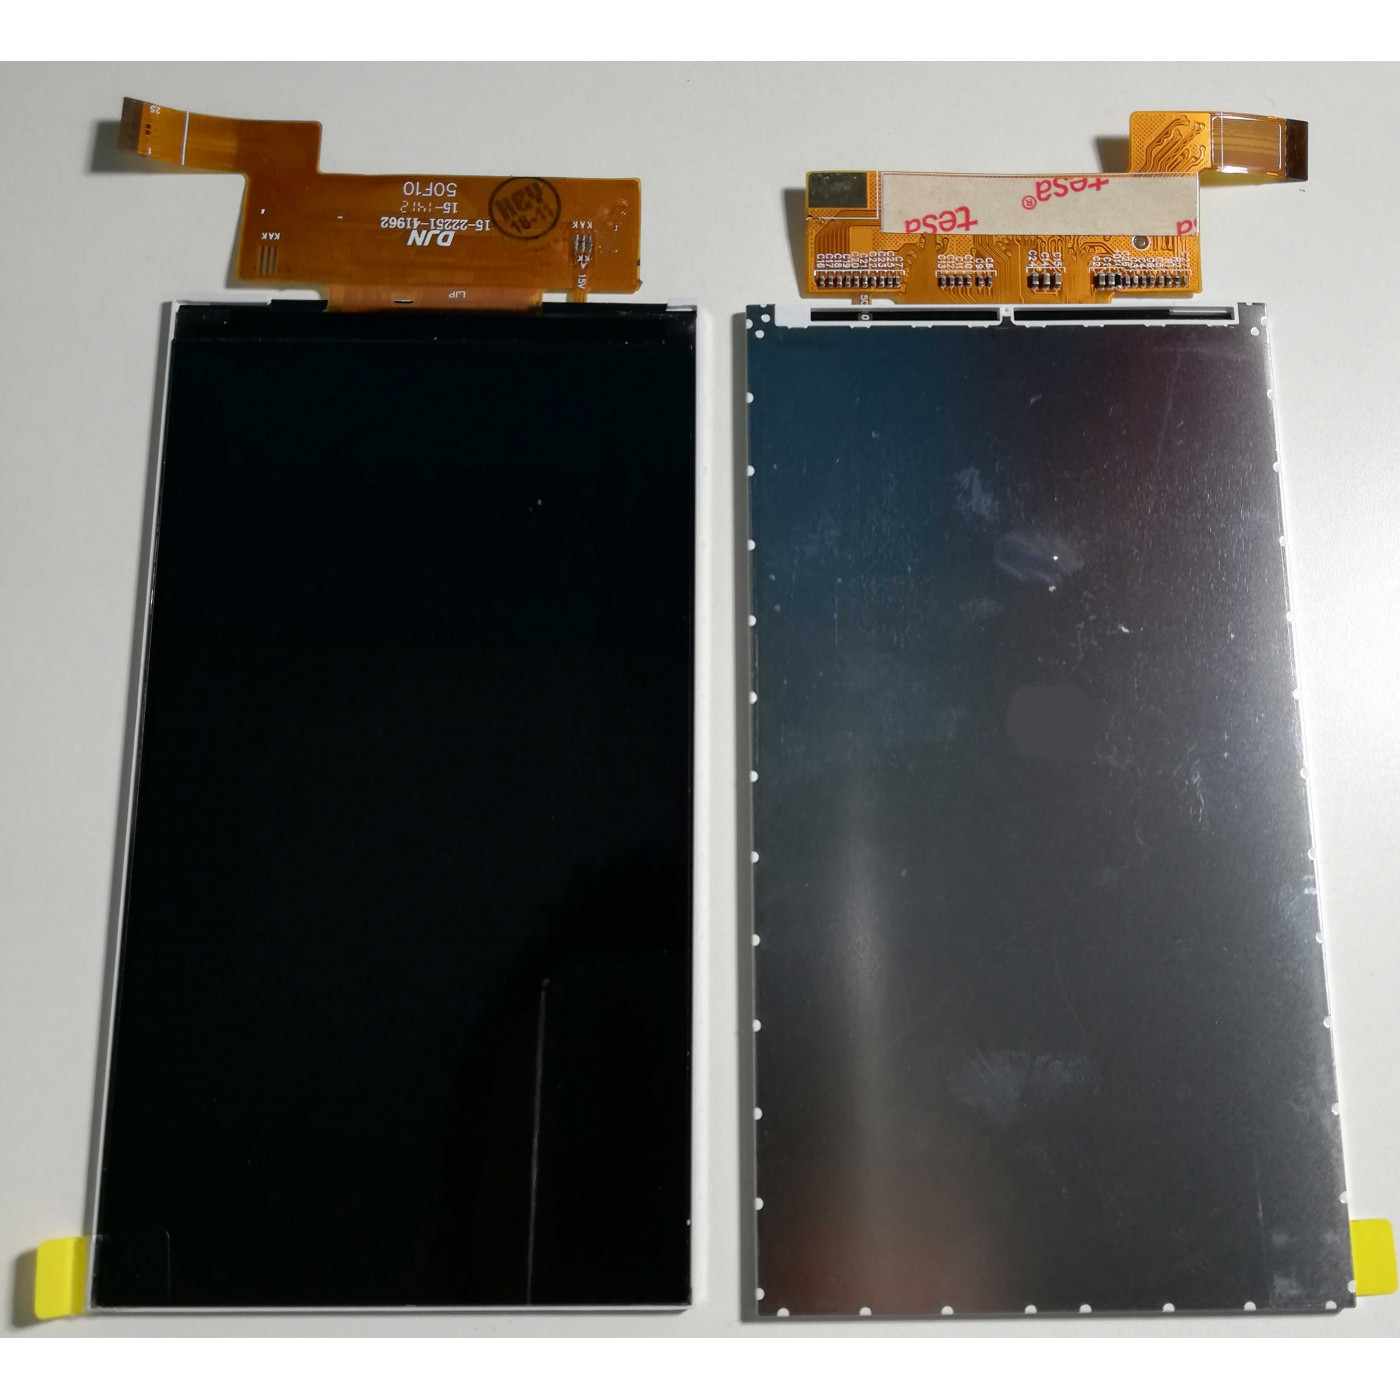 Huawei Ascend Y600 LCD DISPLAY SCREEN LCD MONITOR